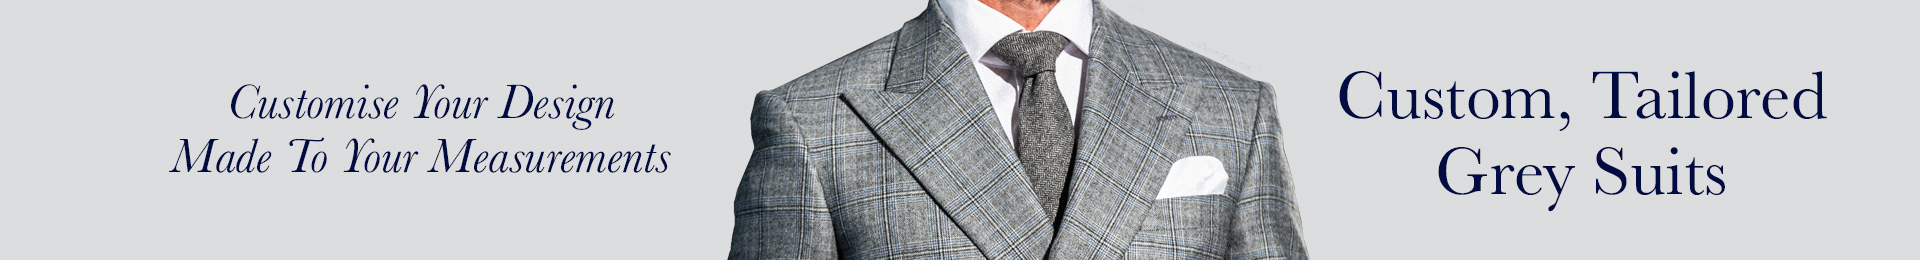 Custom Tailored Grey Suits